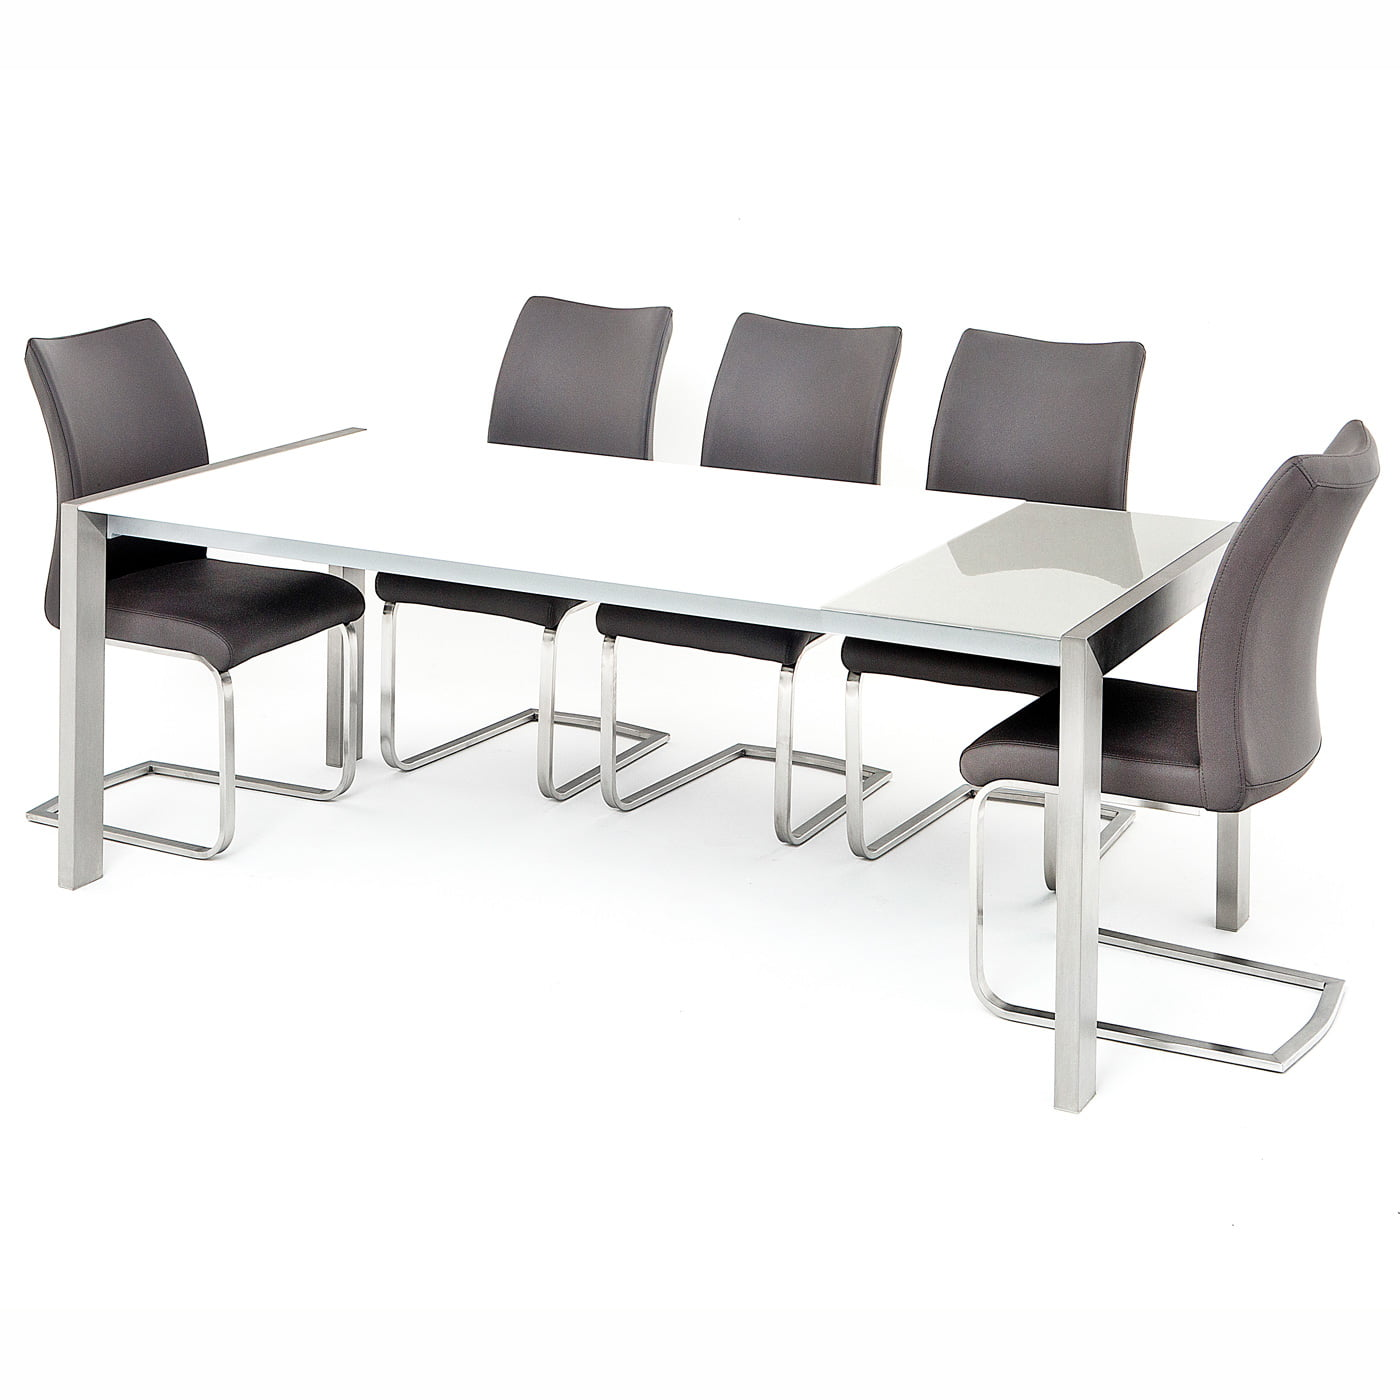 Verona Extendable High Gloss Coffee Table In White: Salconi Extendable White/Grey High Gloss Table